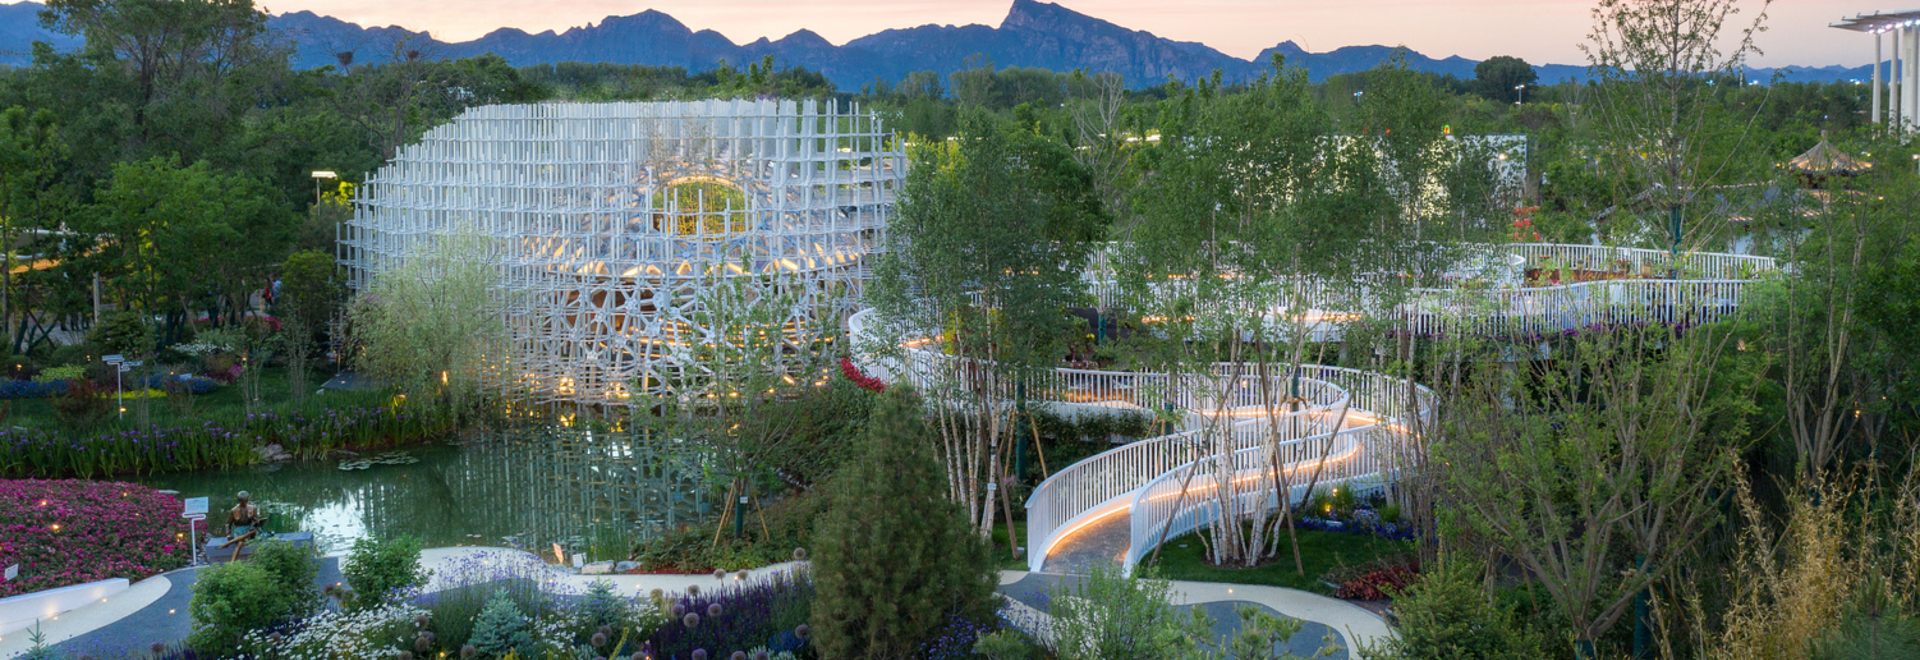 Shanghai Garden, the Beijing Horticultural Exhibition 2019 / Arcplus Architectural Decoration & Landscape Design Research Institute